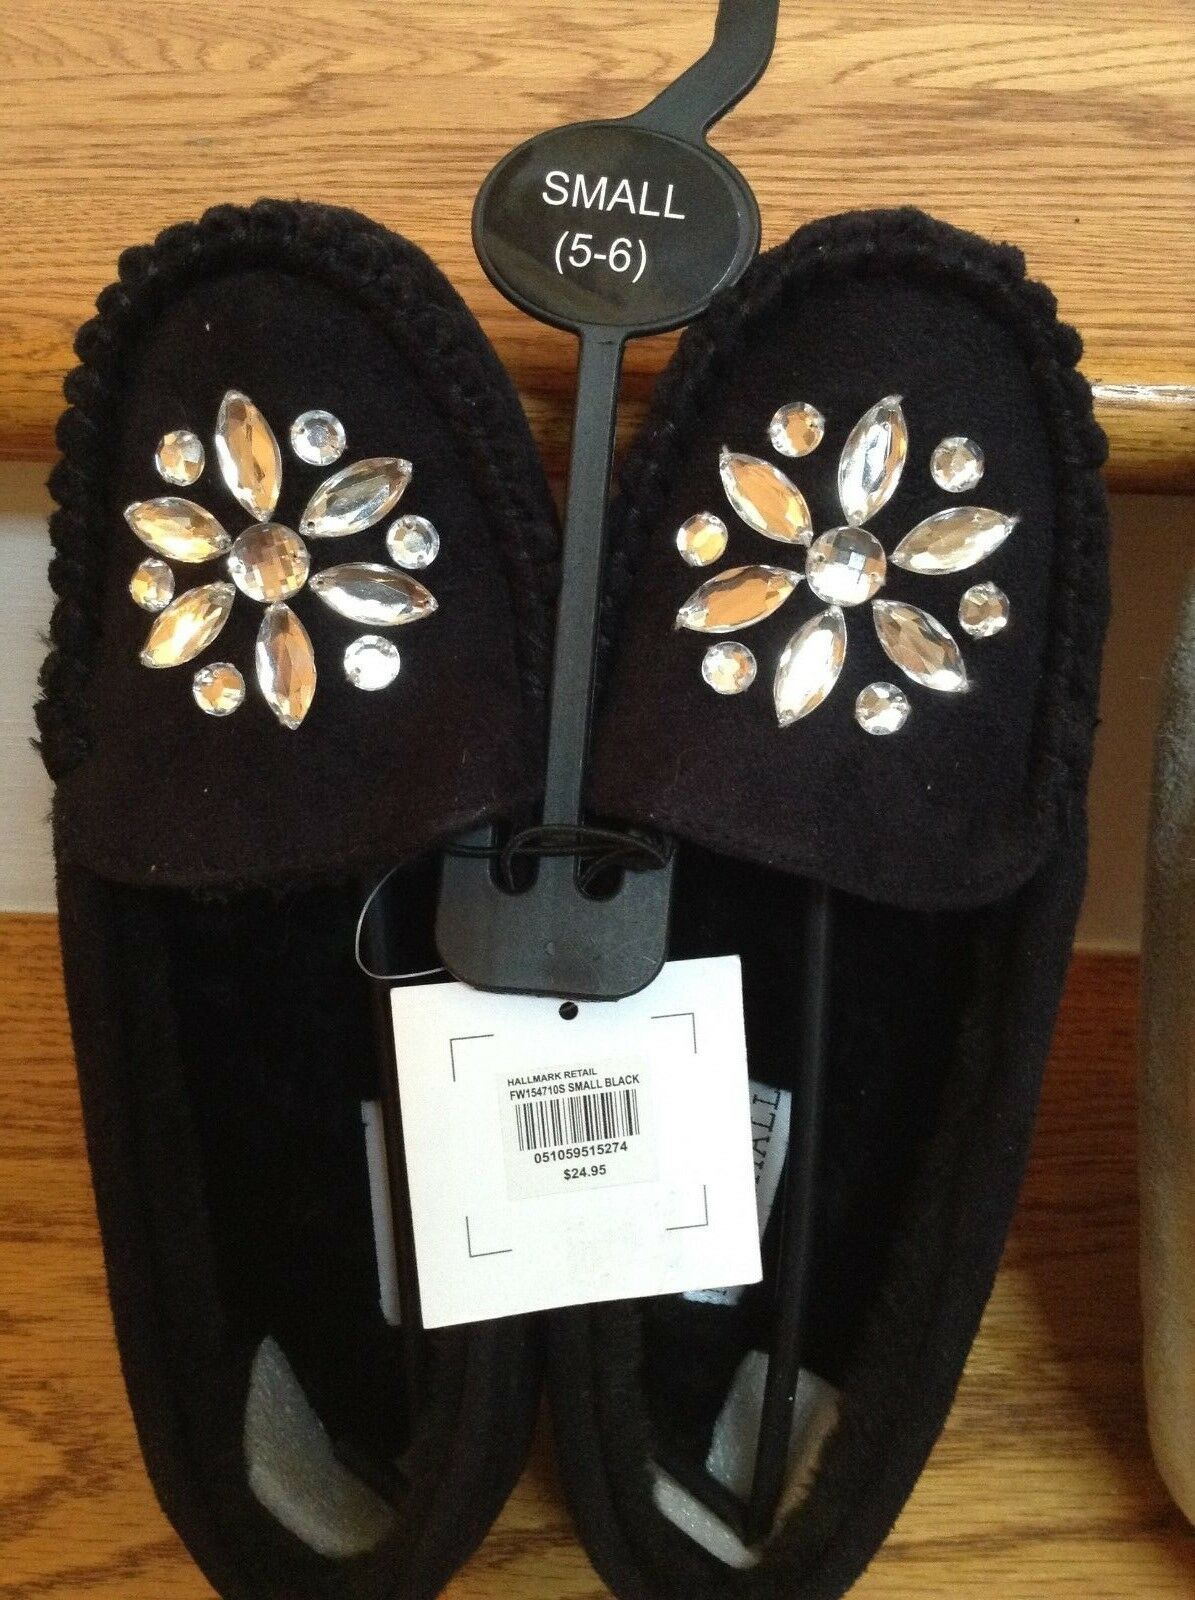 Woman's Bedroom Slippers Moccasins Size 5/6 Faux Fur Lining w/ Beads Black PLUSH